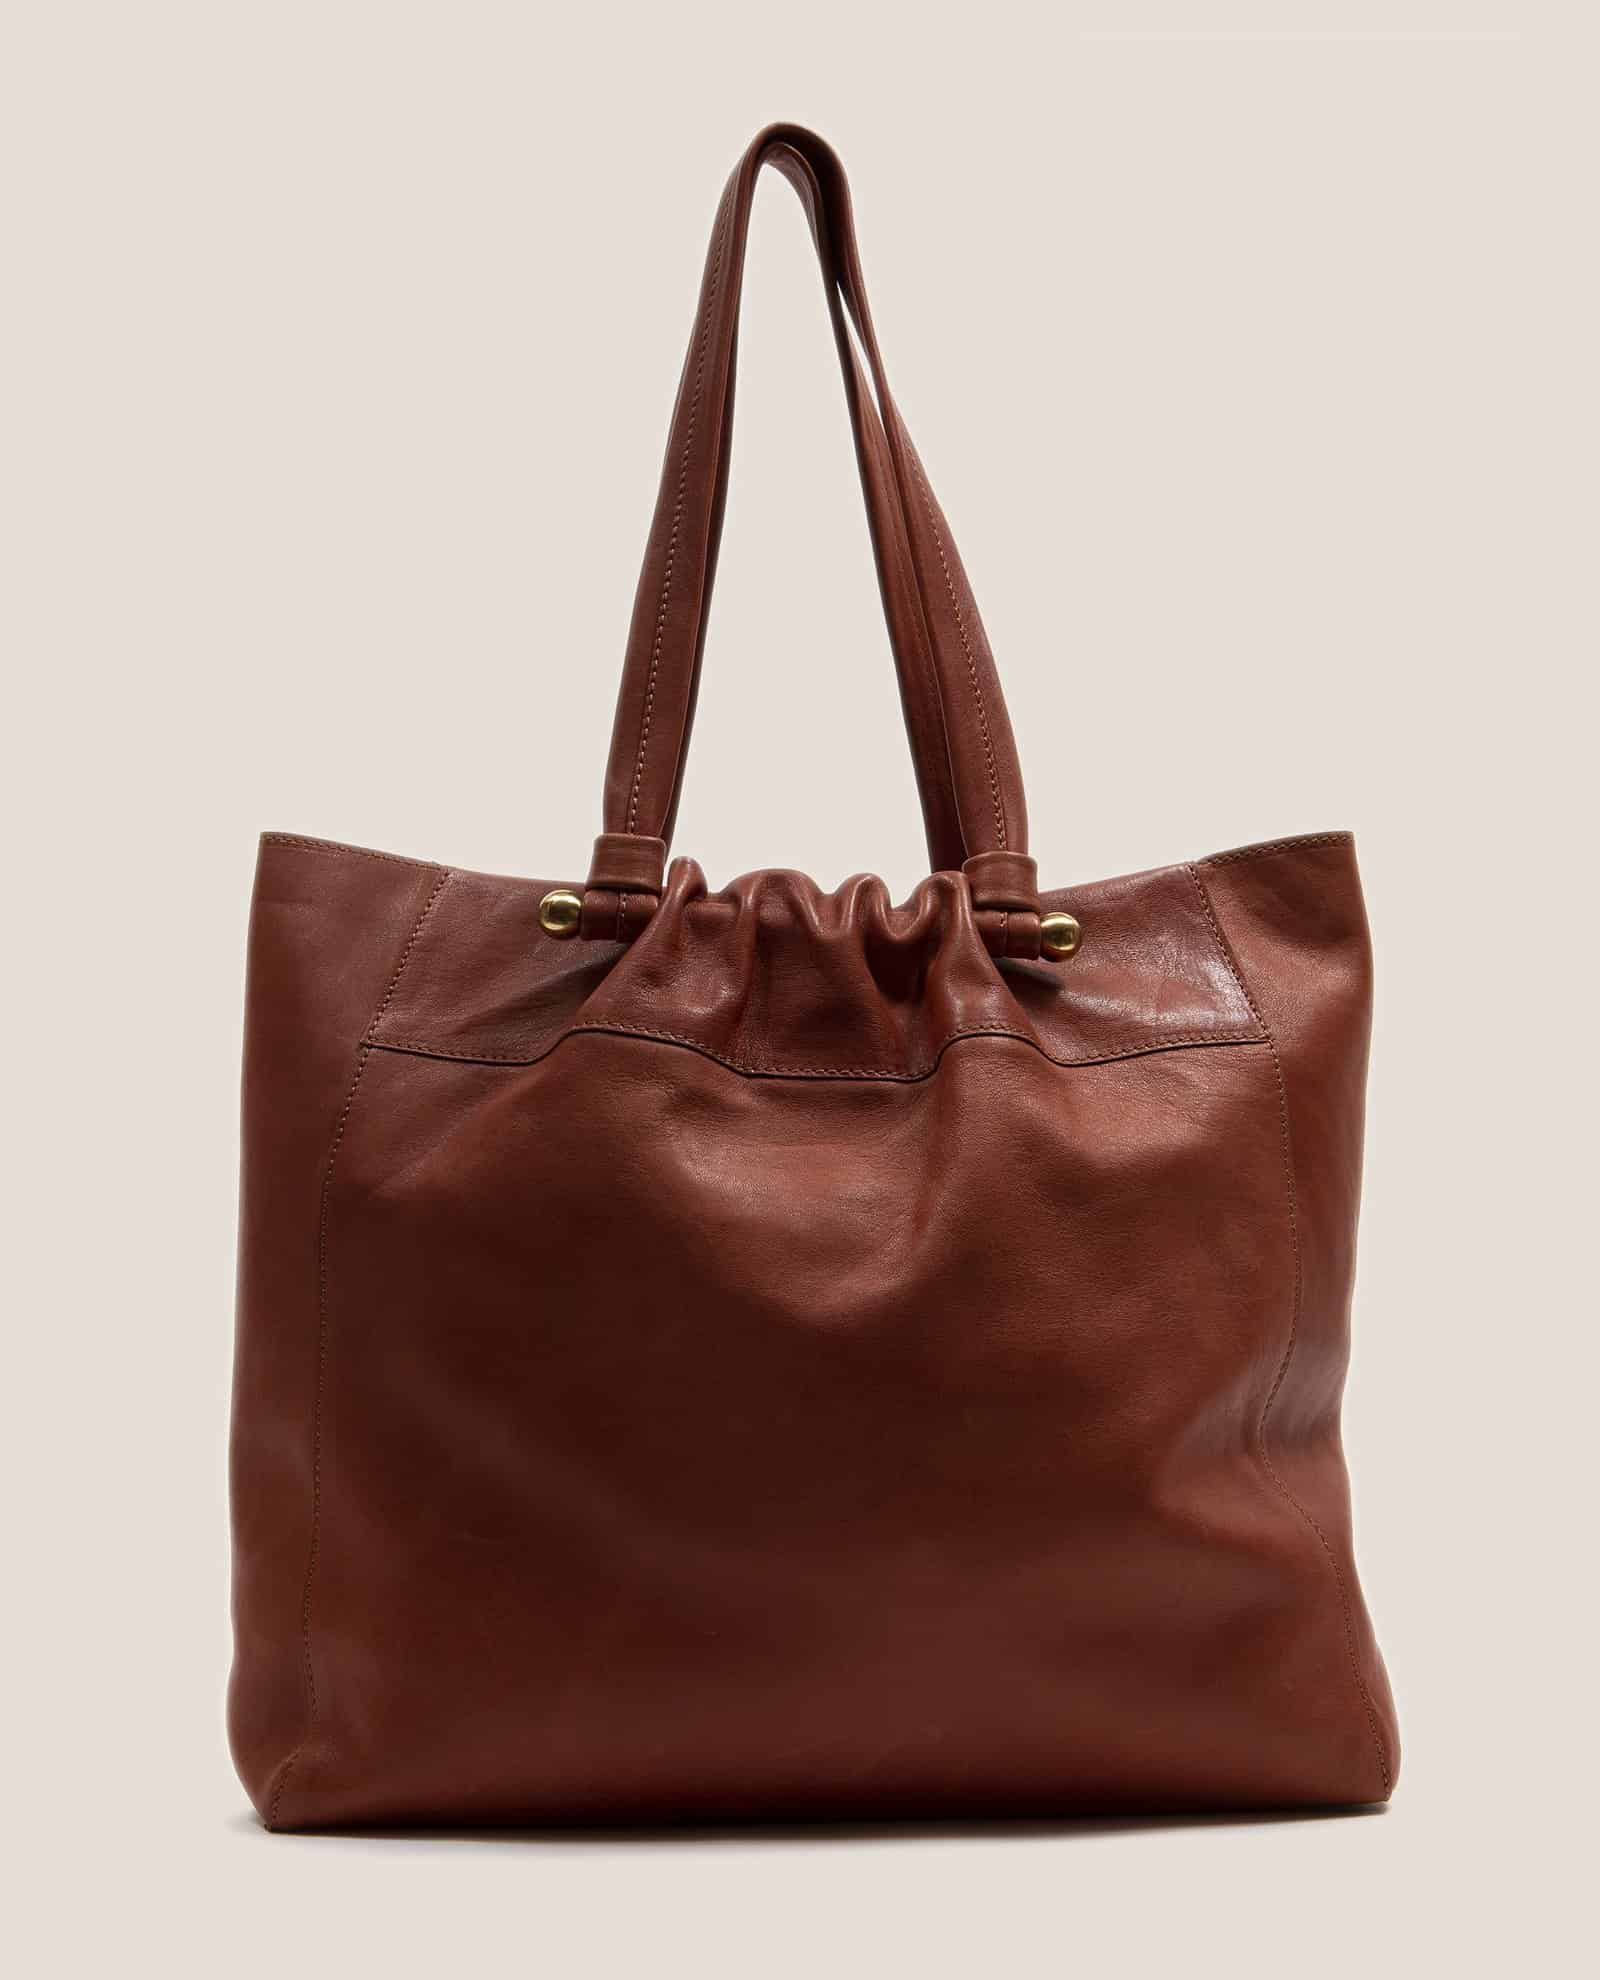 Tote bag in orange-red vegetable-dyed leather by Petty Things